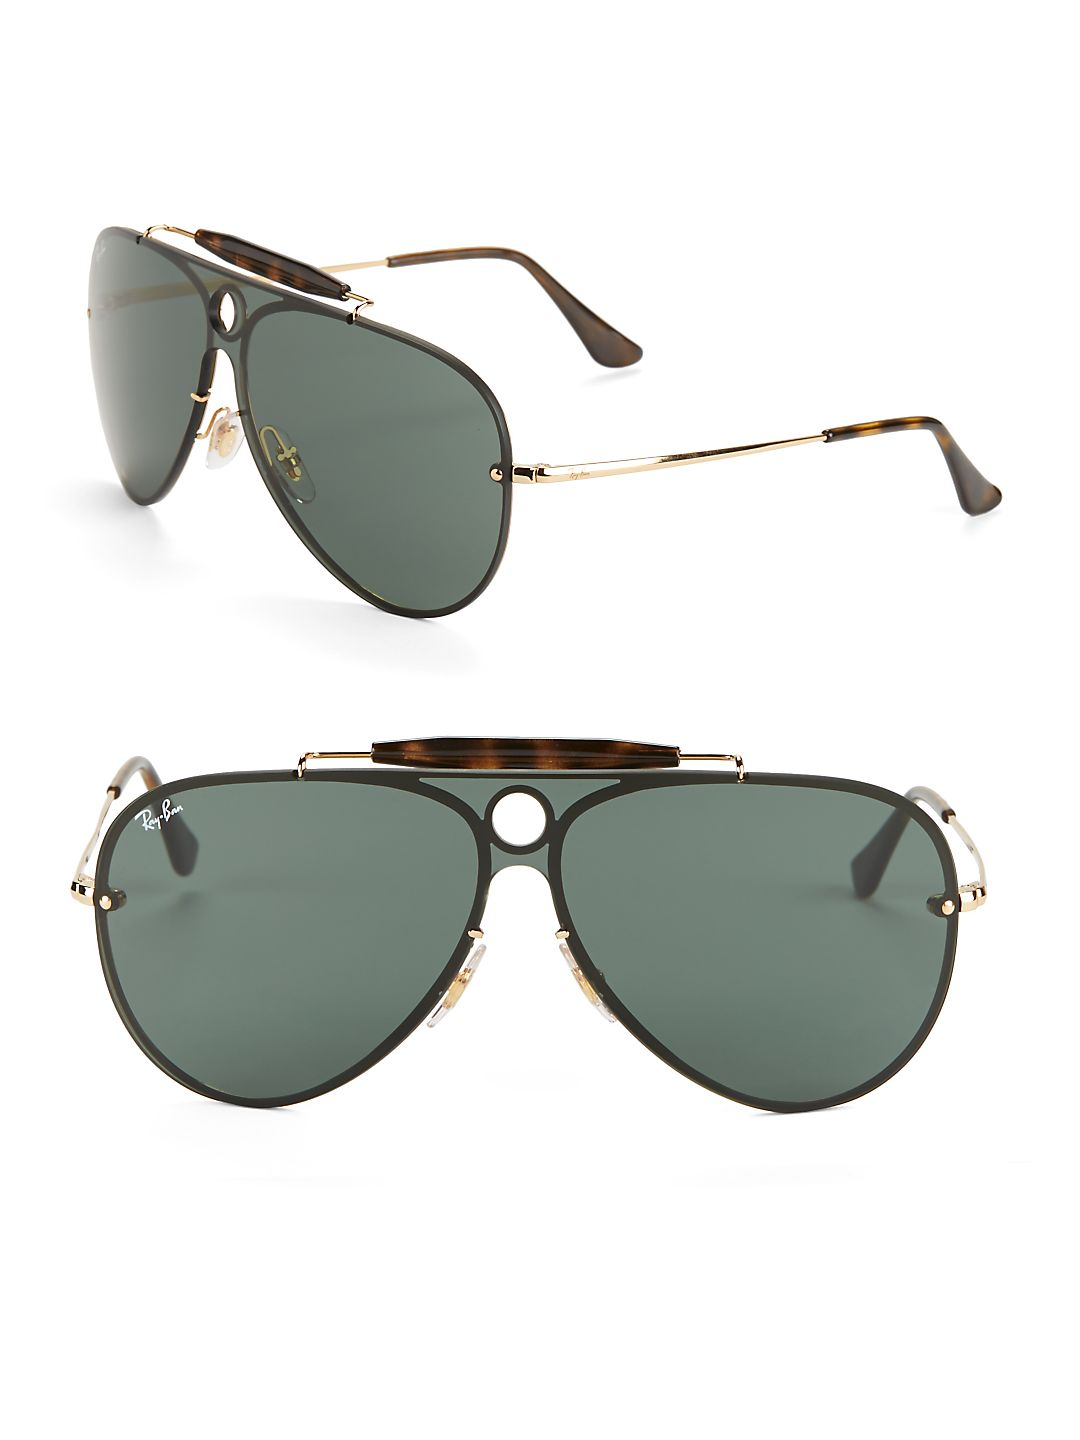 Ray-Ban Unisex RB3581N Blaze Shooter Sunglasses, 32mm